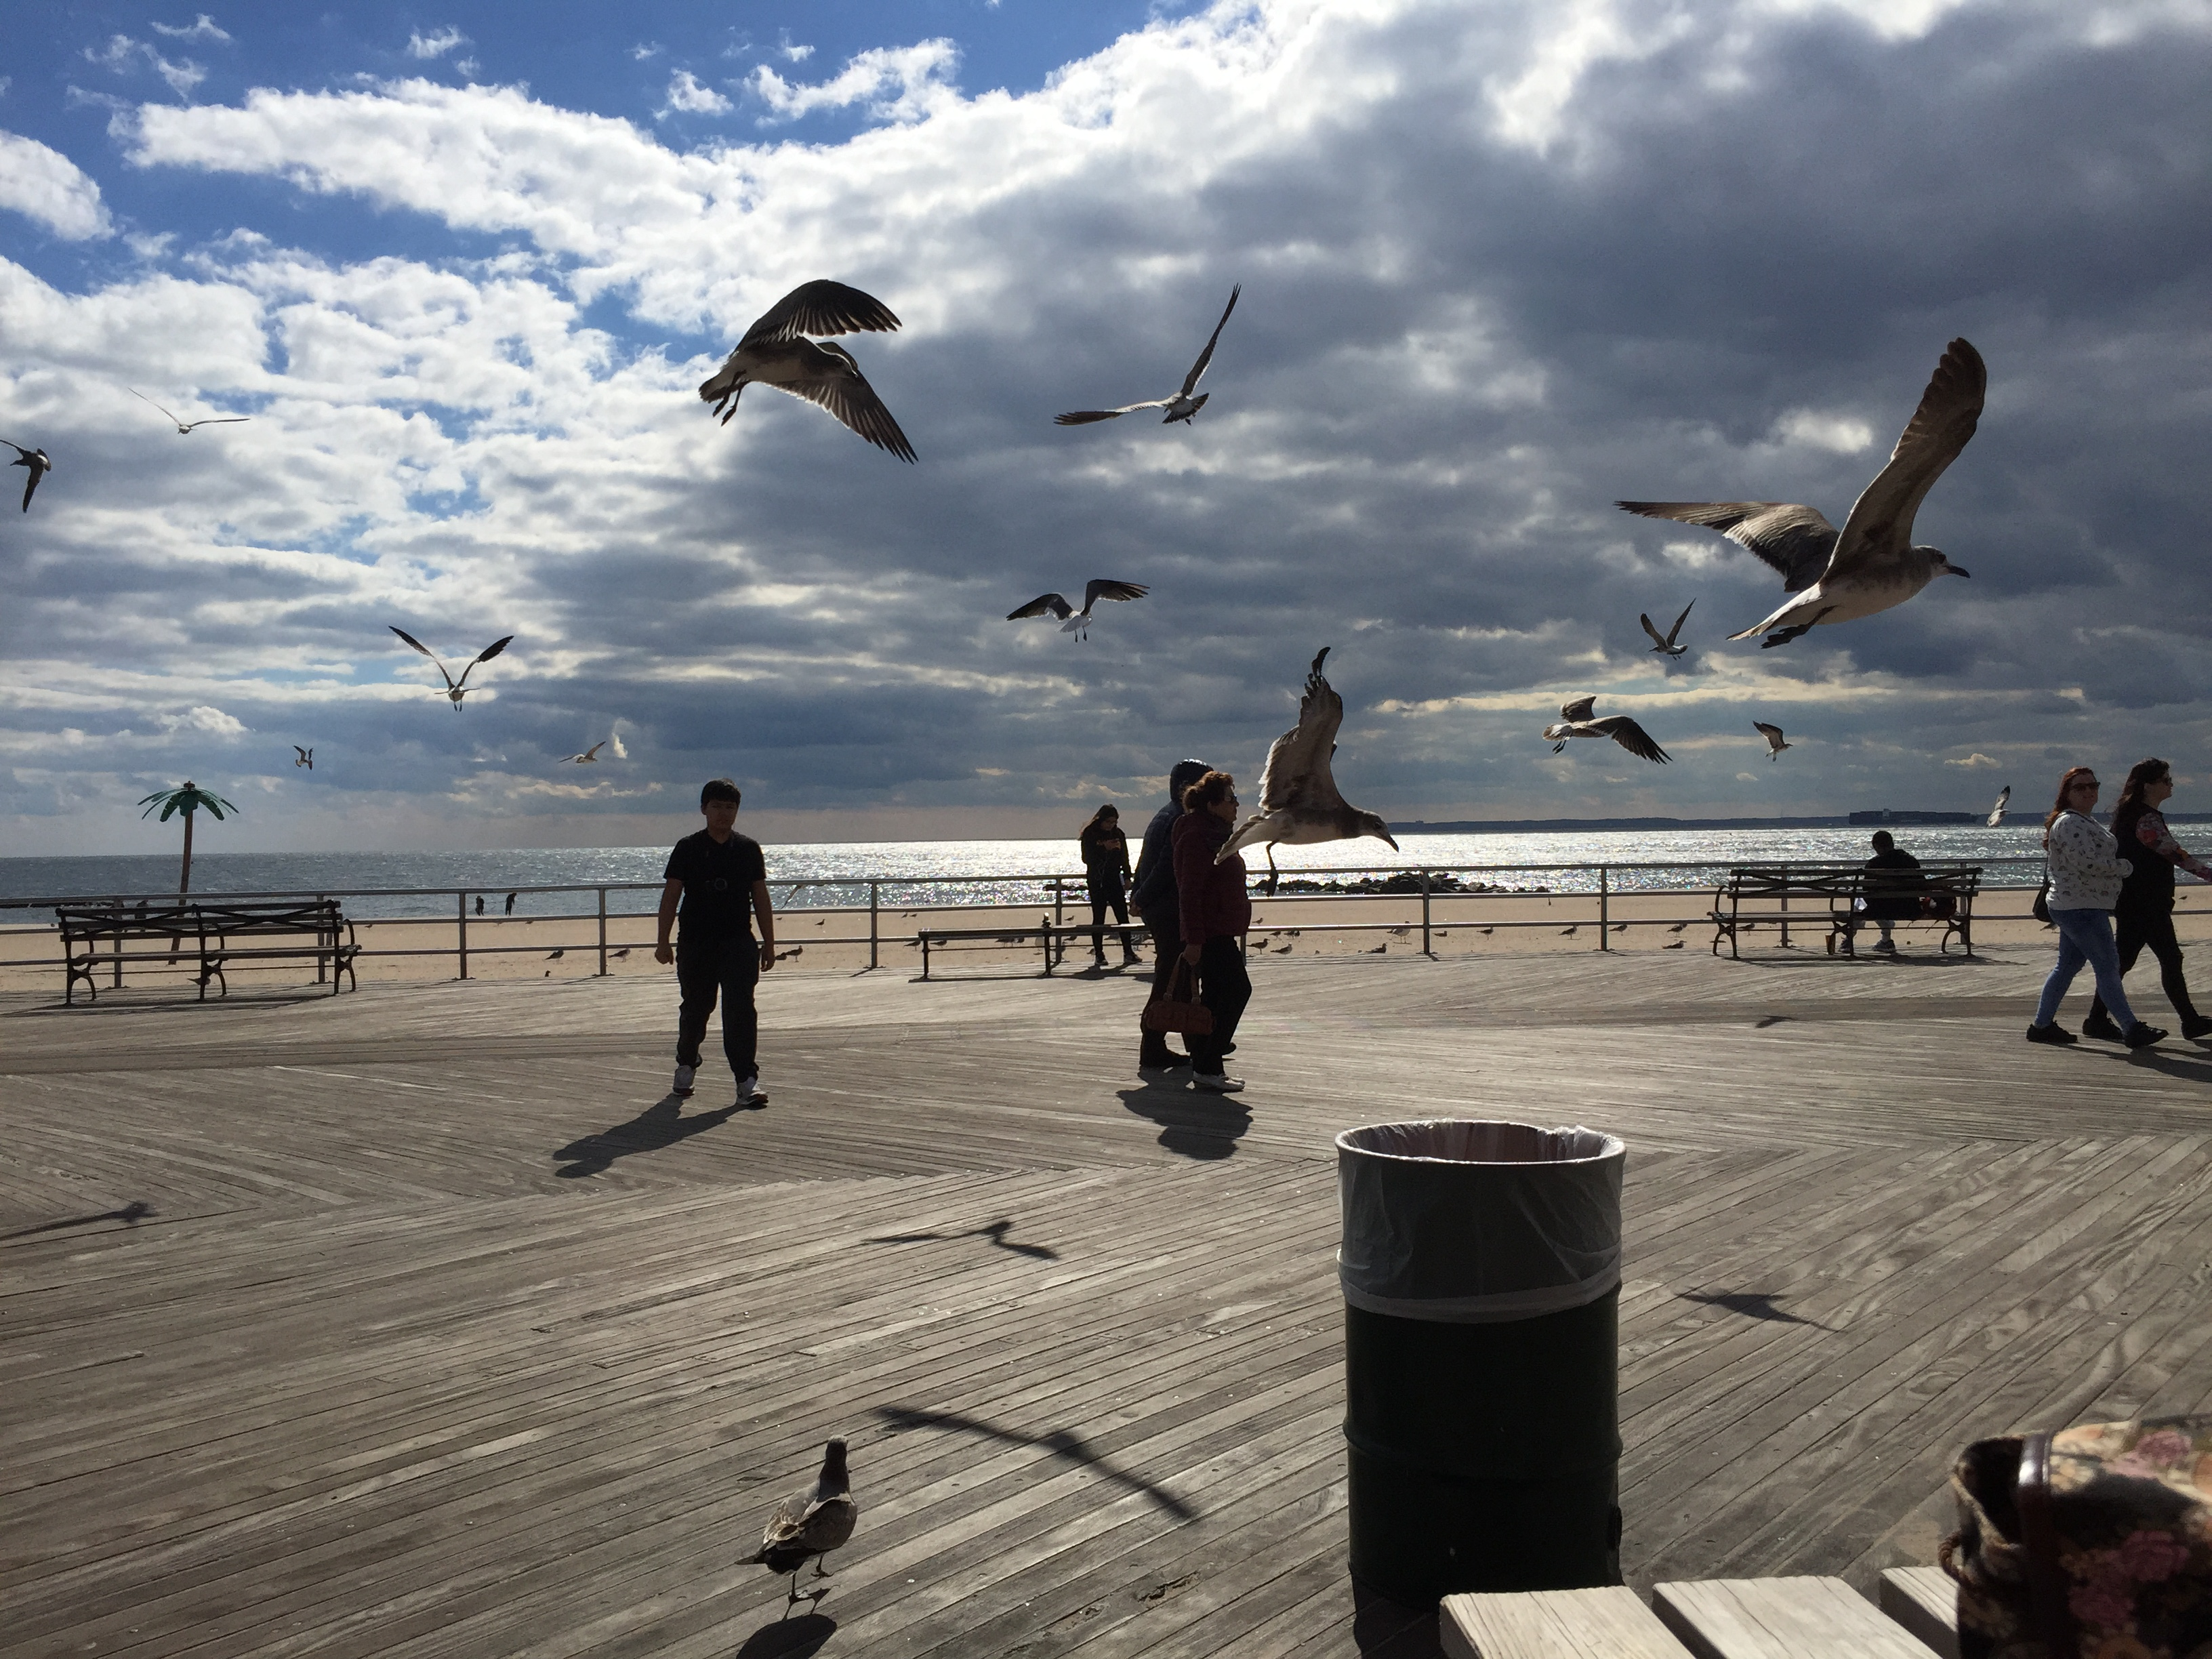 Gulls on the Boardwalk.jpg